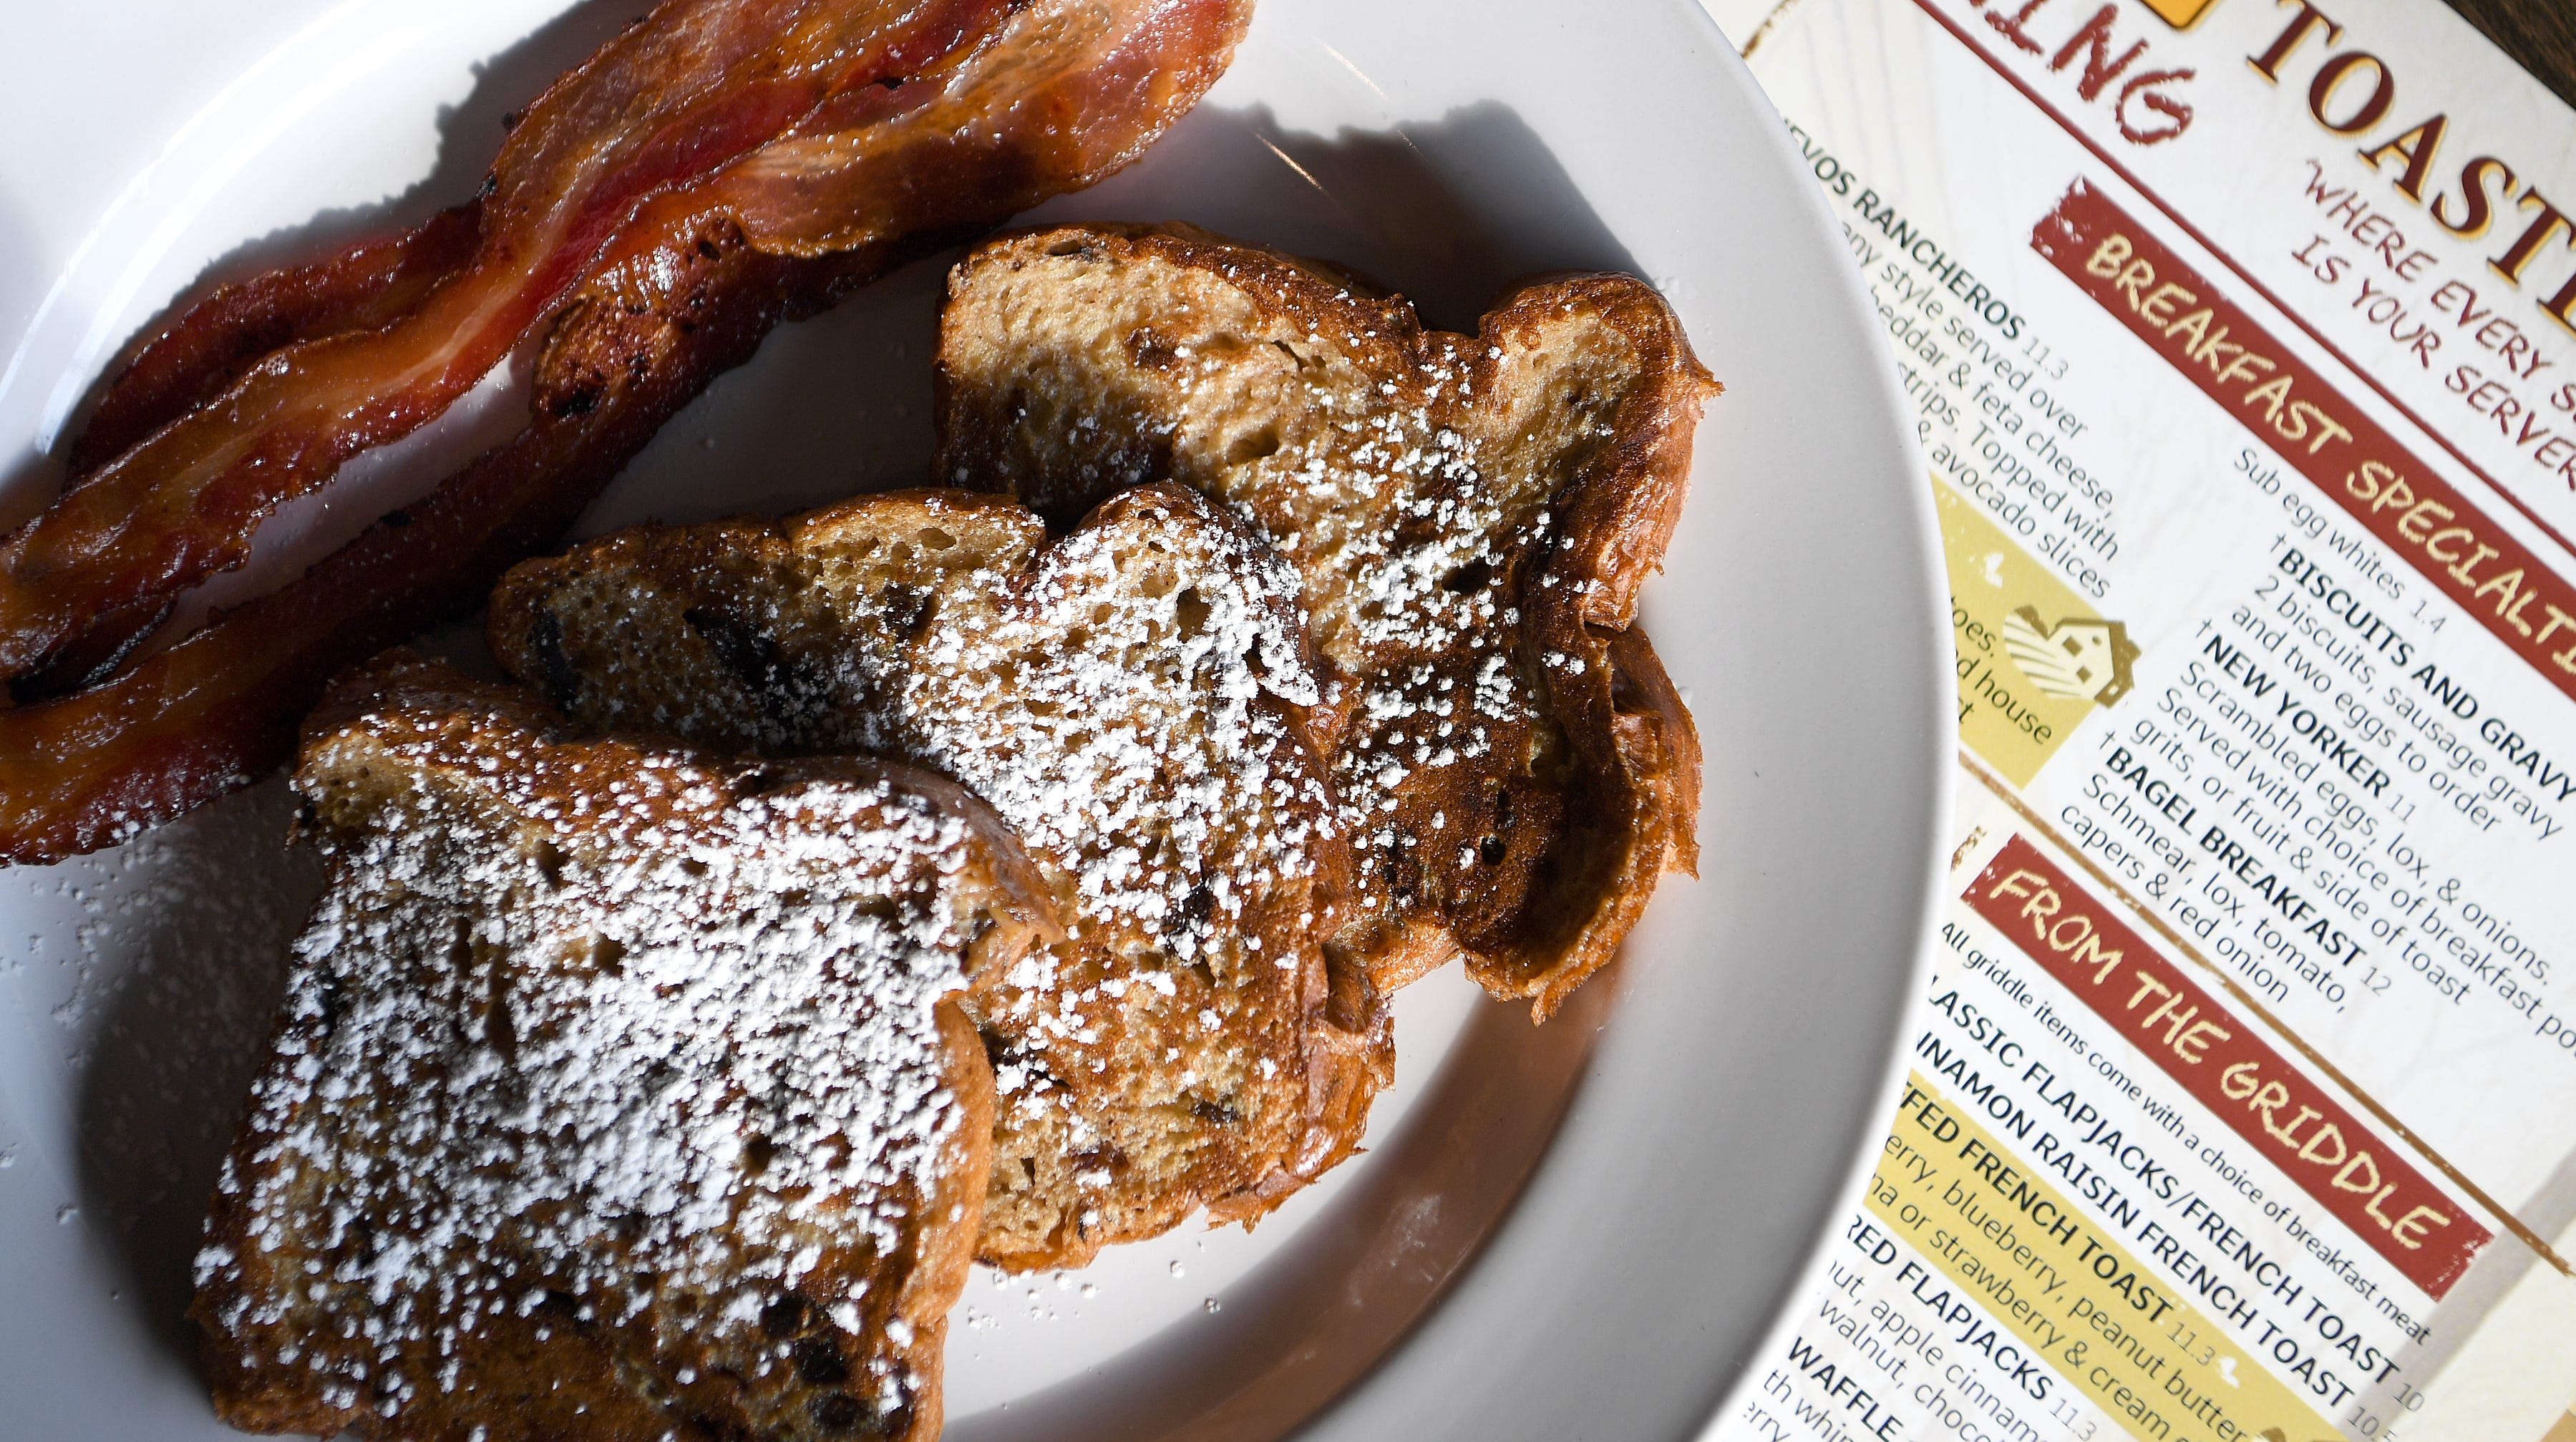 Dining review: Famous Toastery in East Asheville